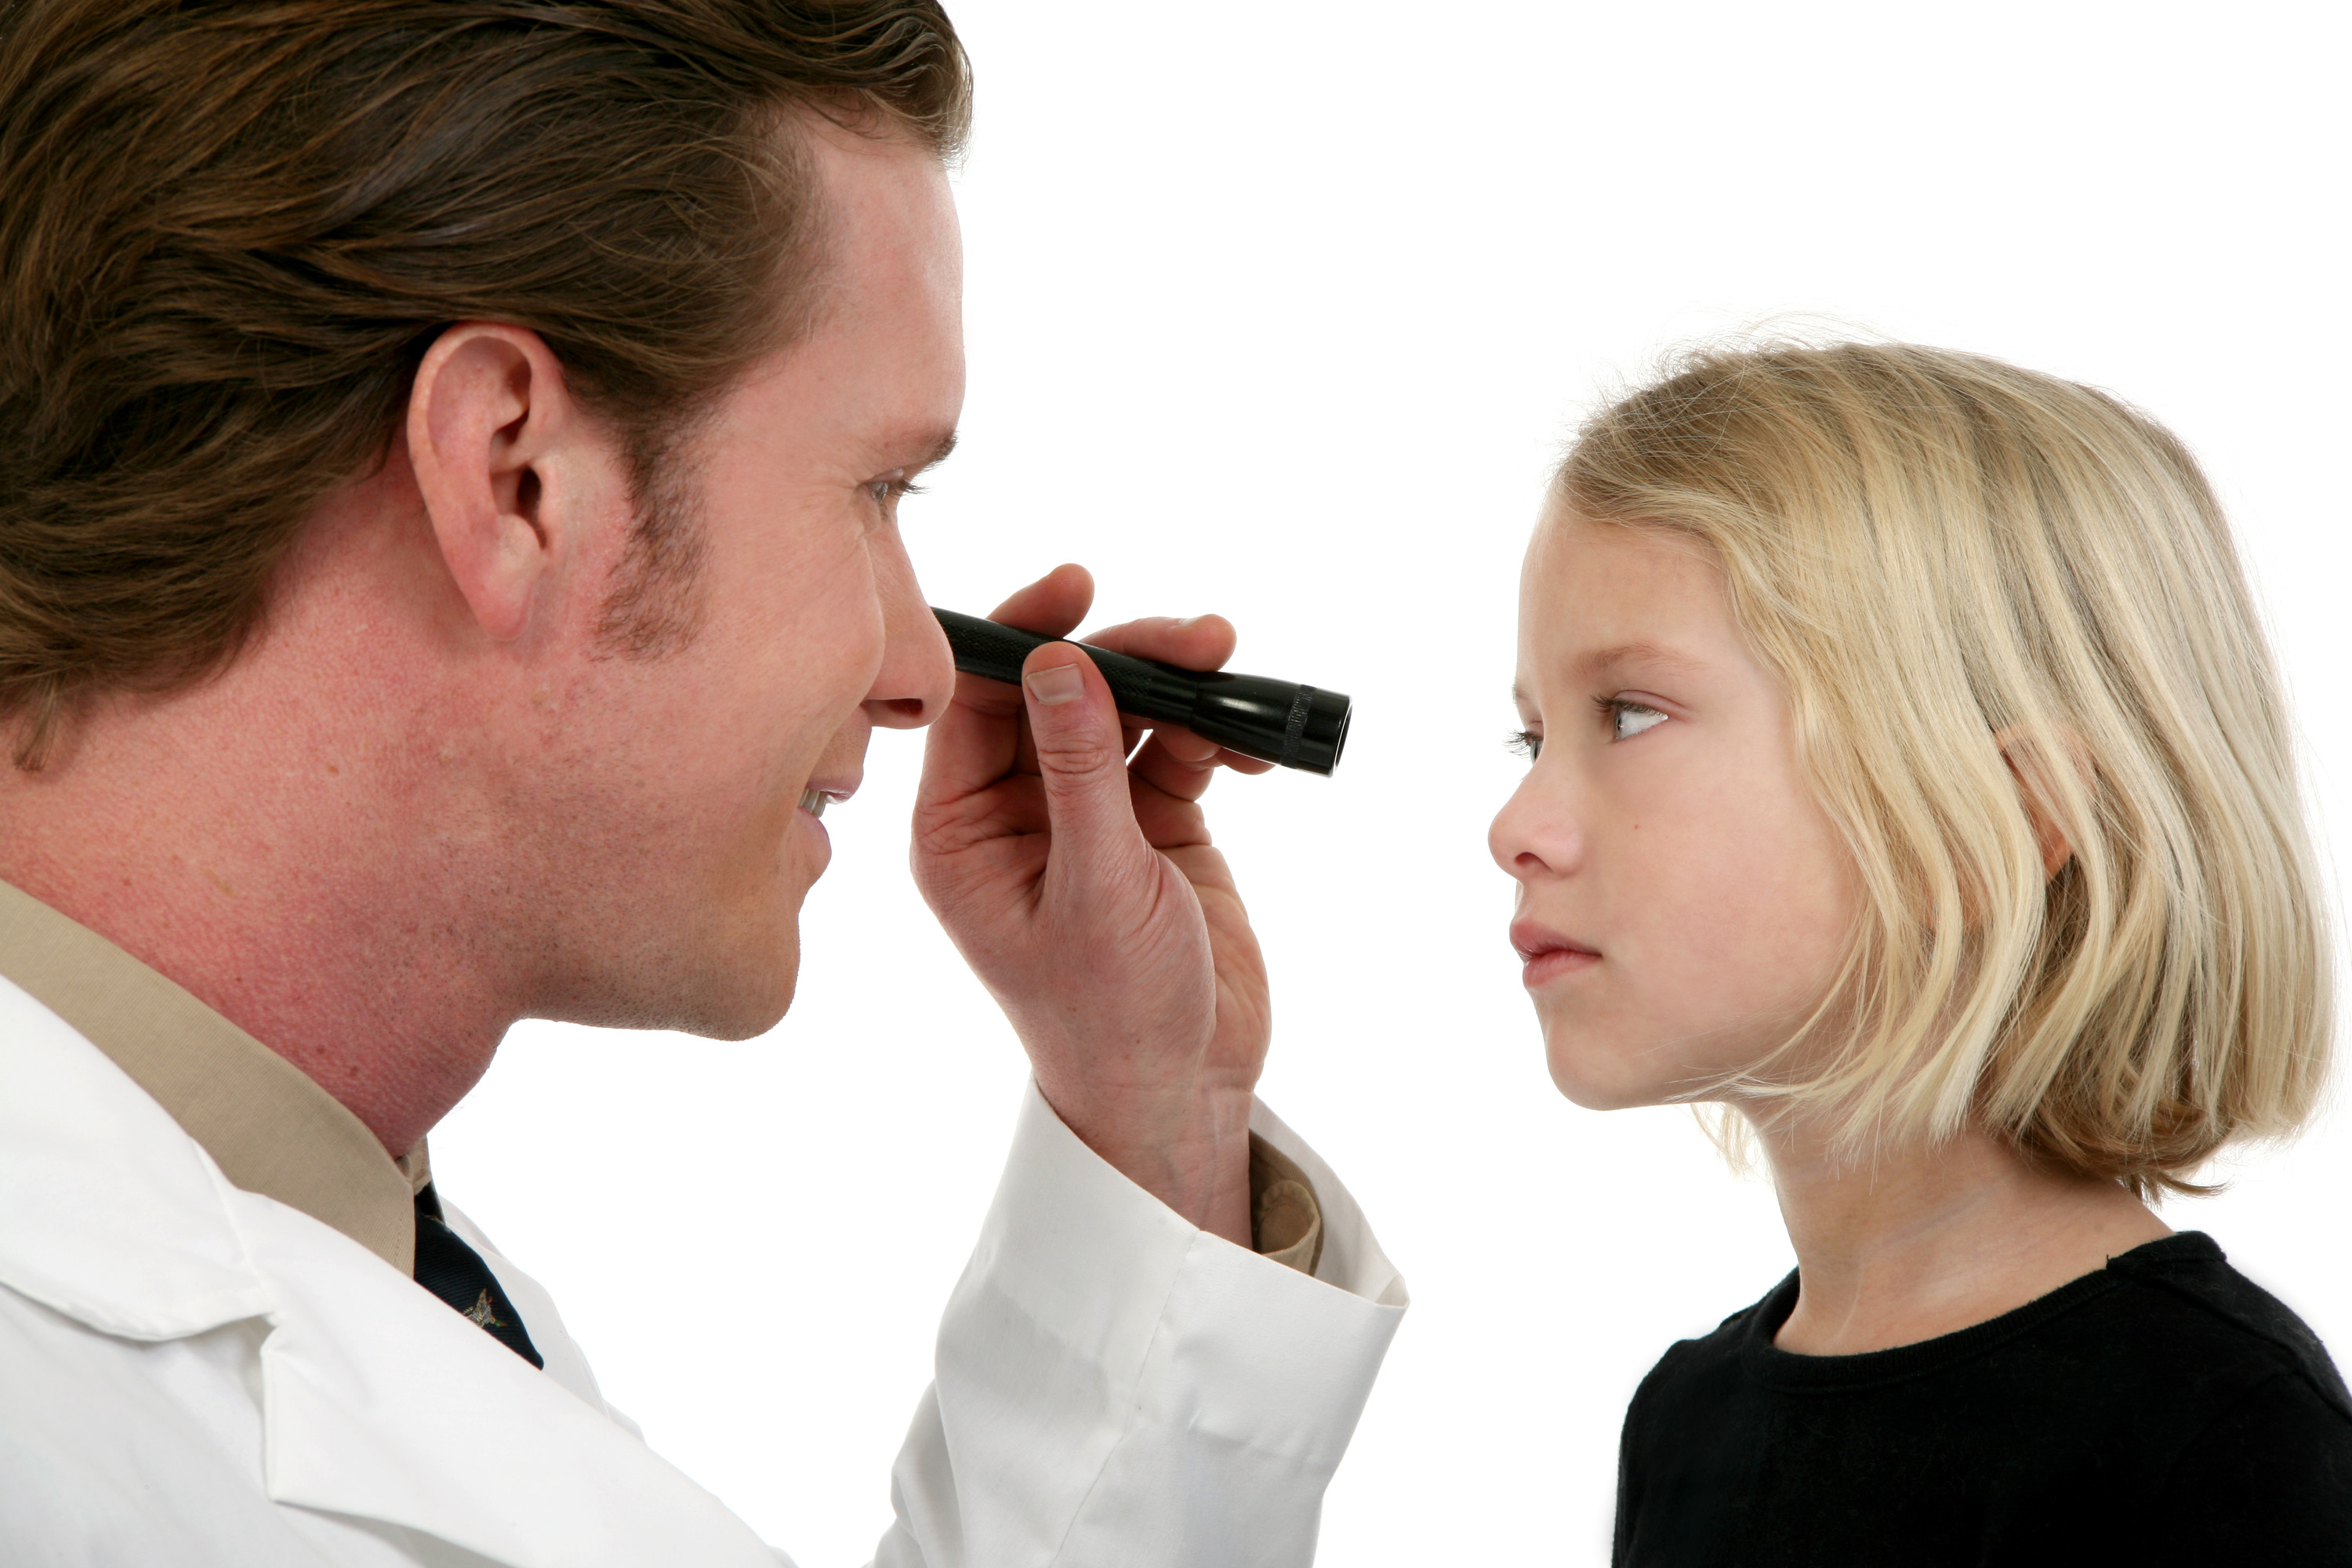 child getting an eye exam from Canstockphotos